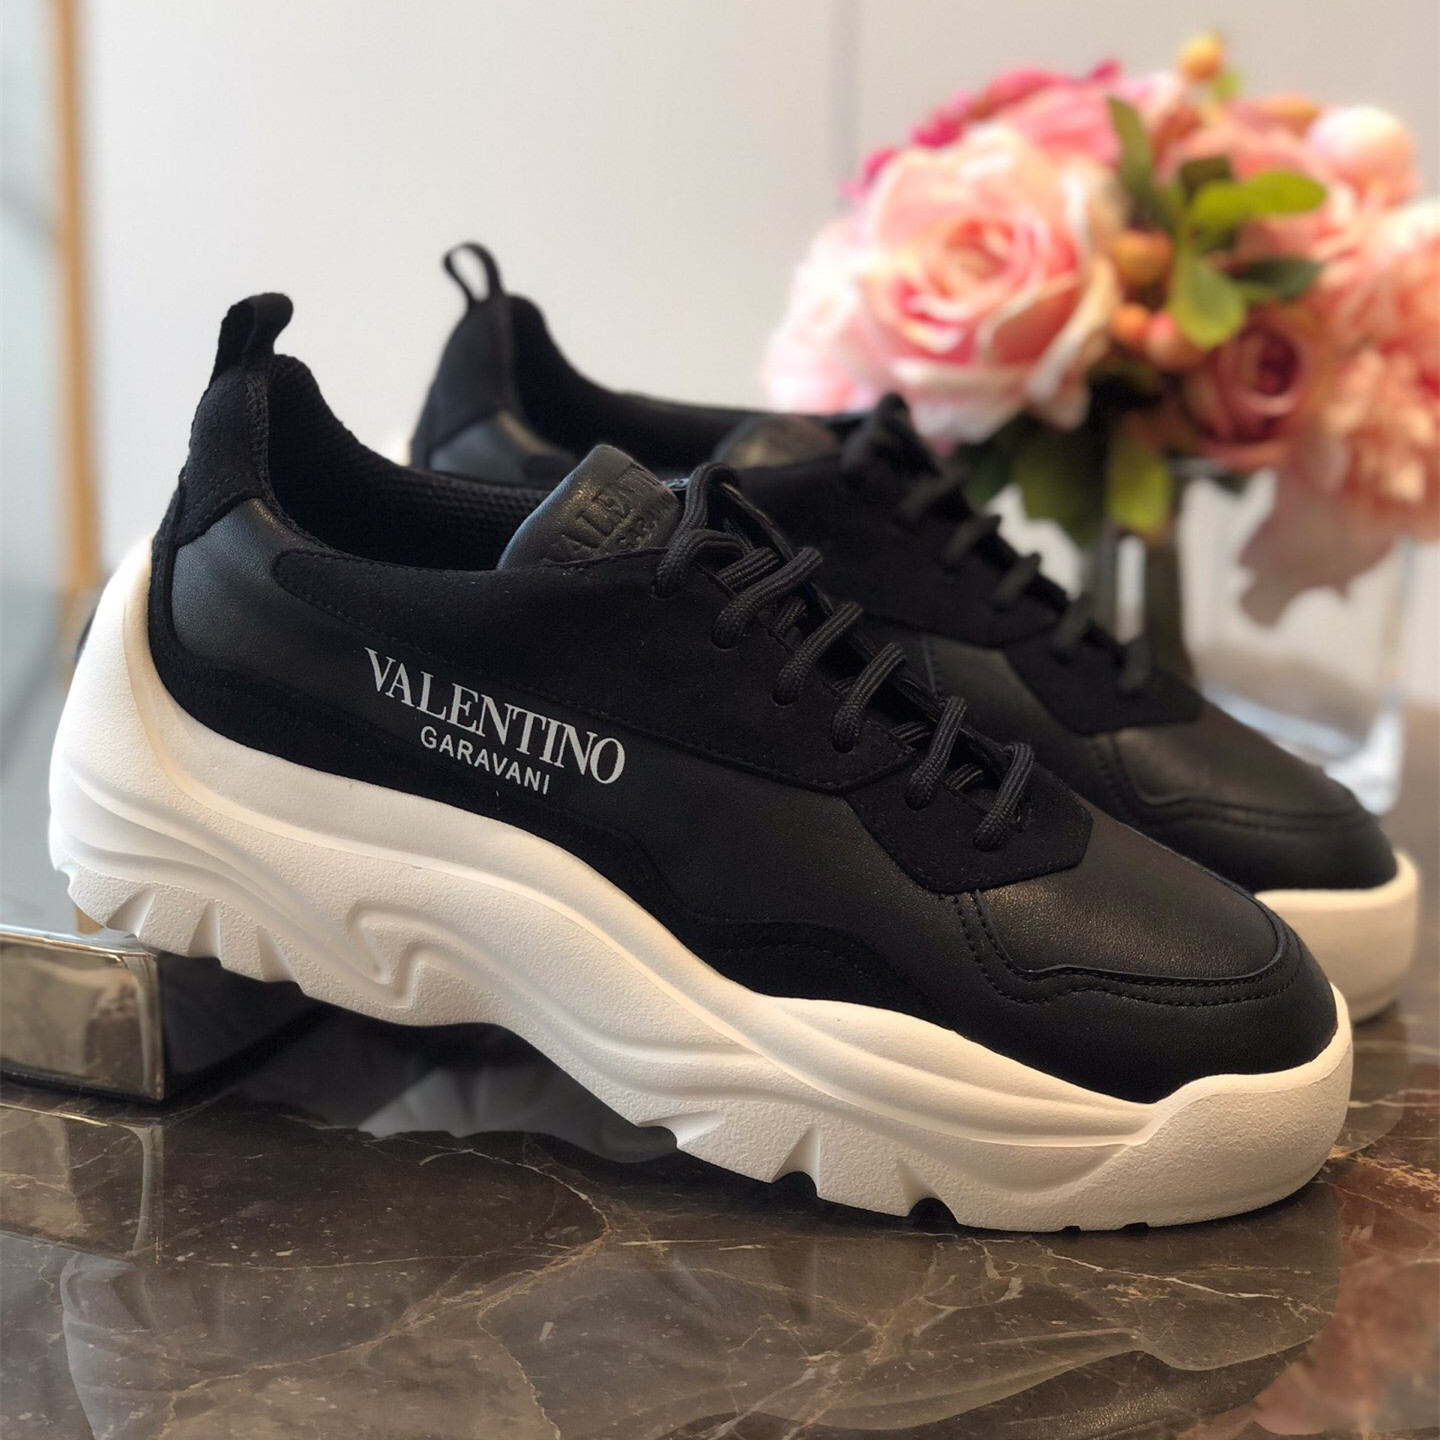 valentino sneaker shoes